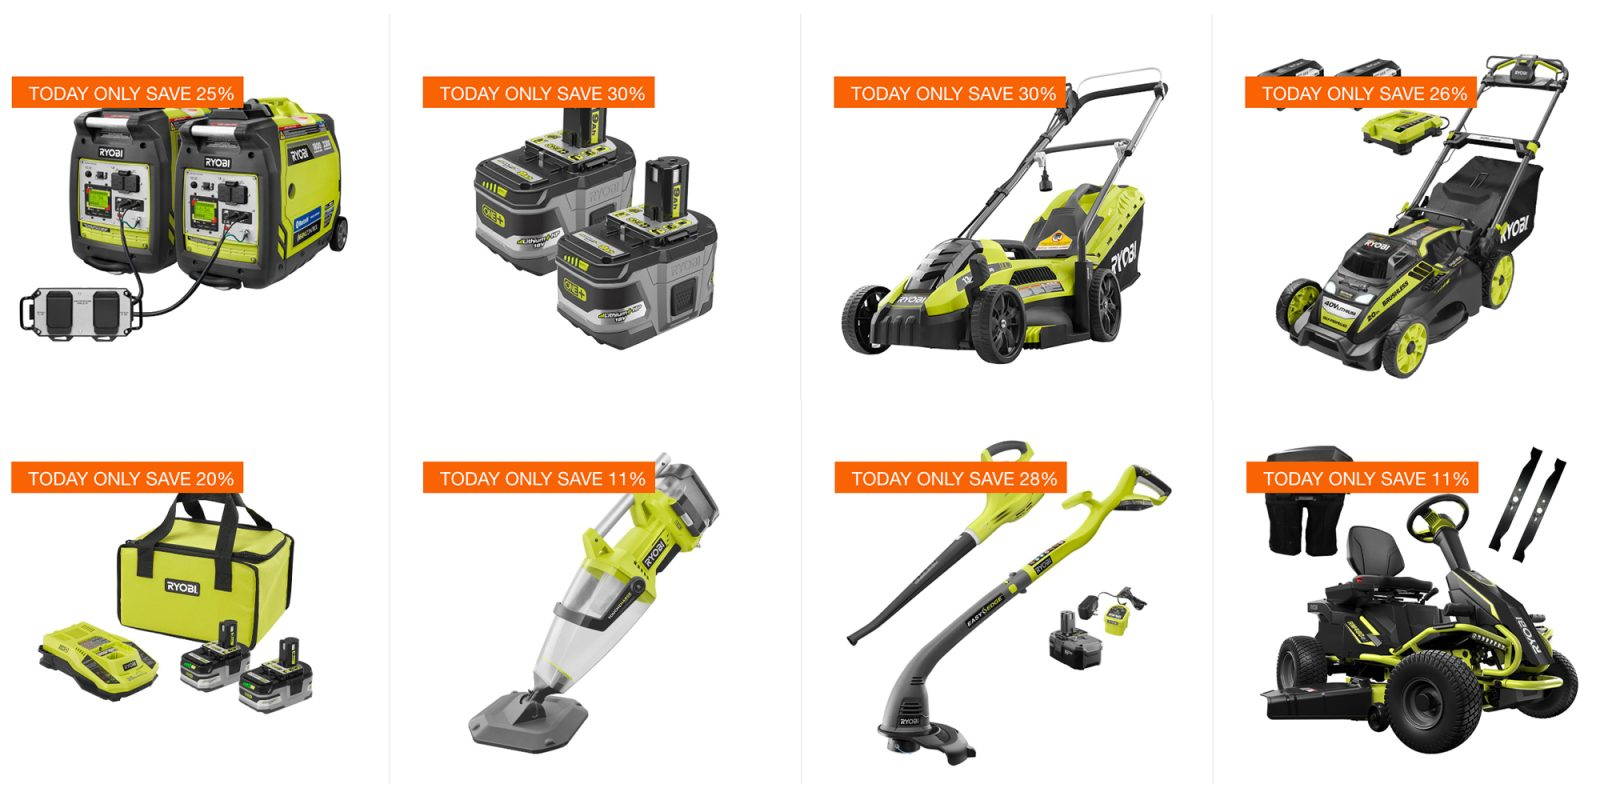 Save On Ryobi Power Tools Lawn Mowers And More Today Only